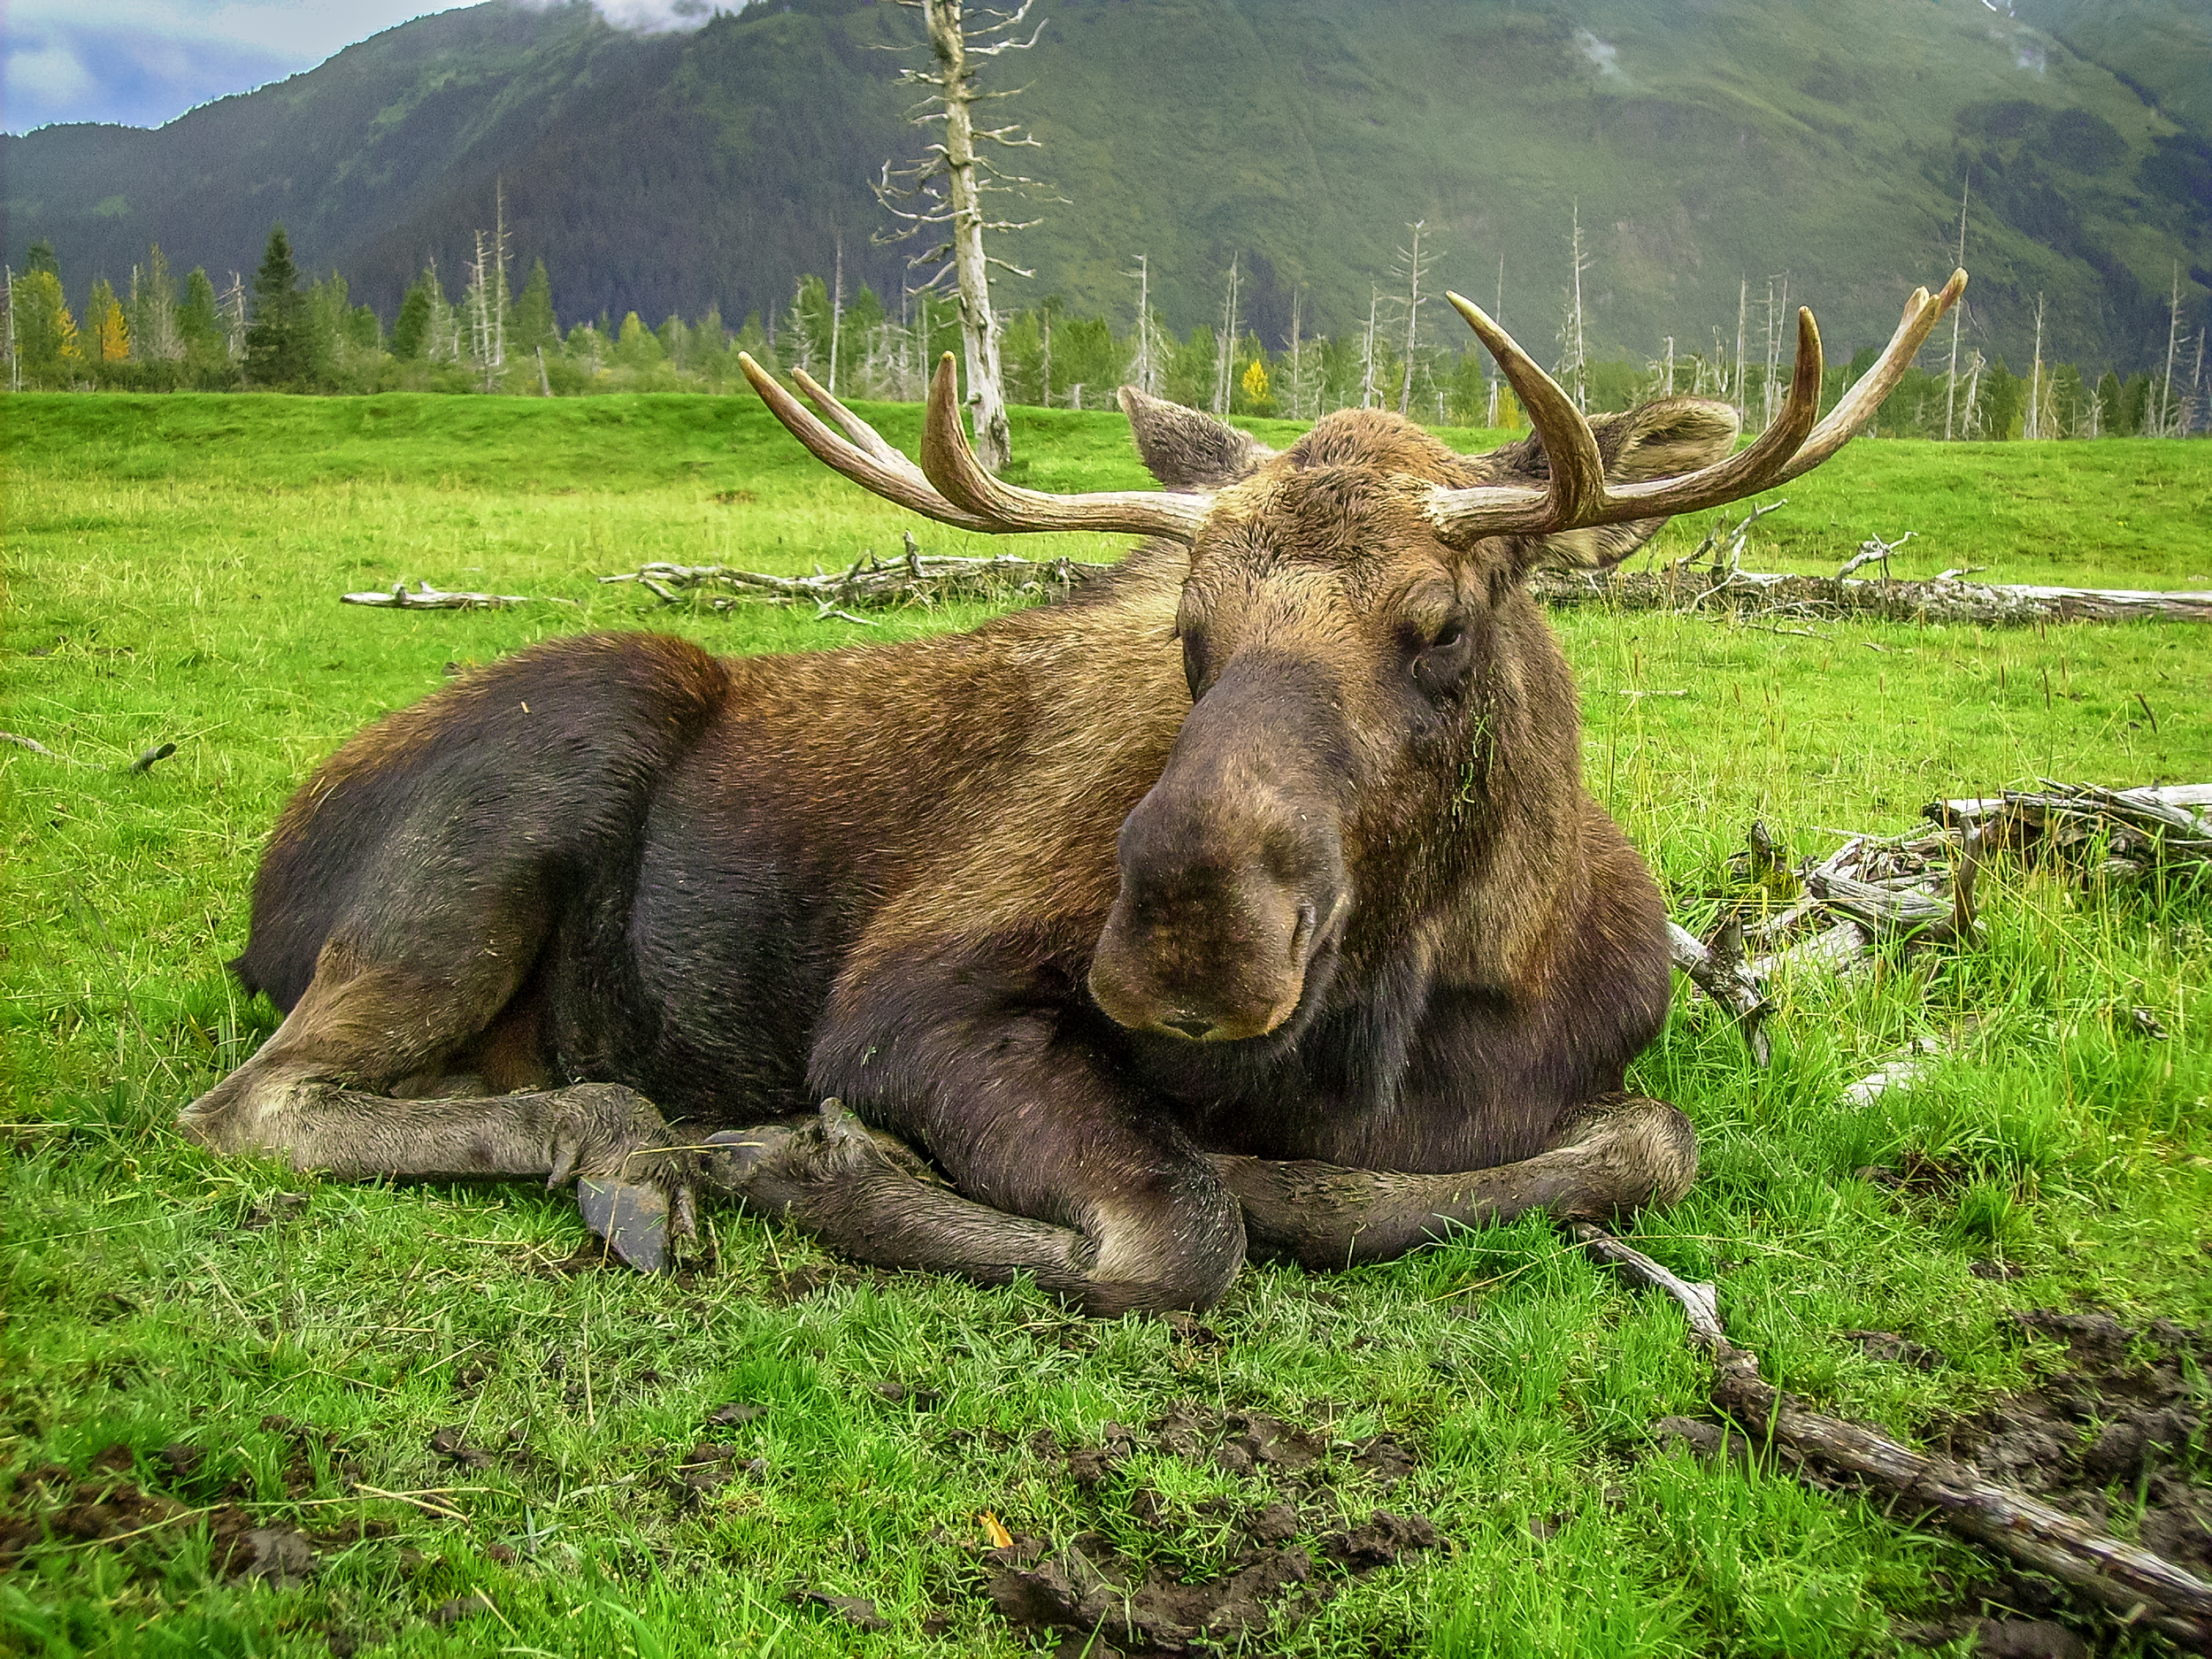 Moose - Alaskan Wildlife Conservation Center